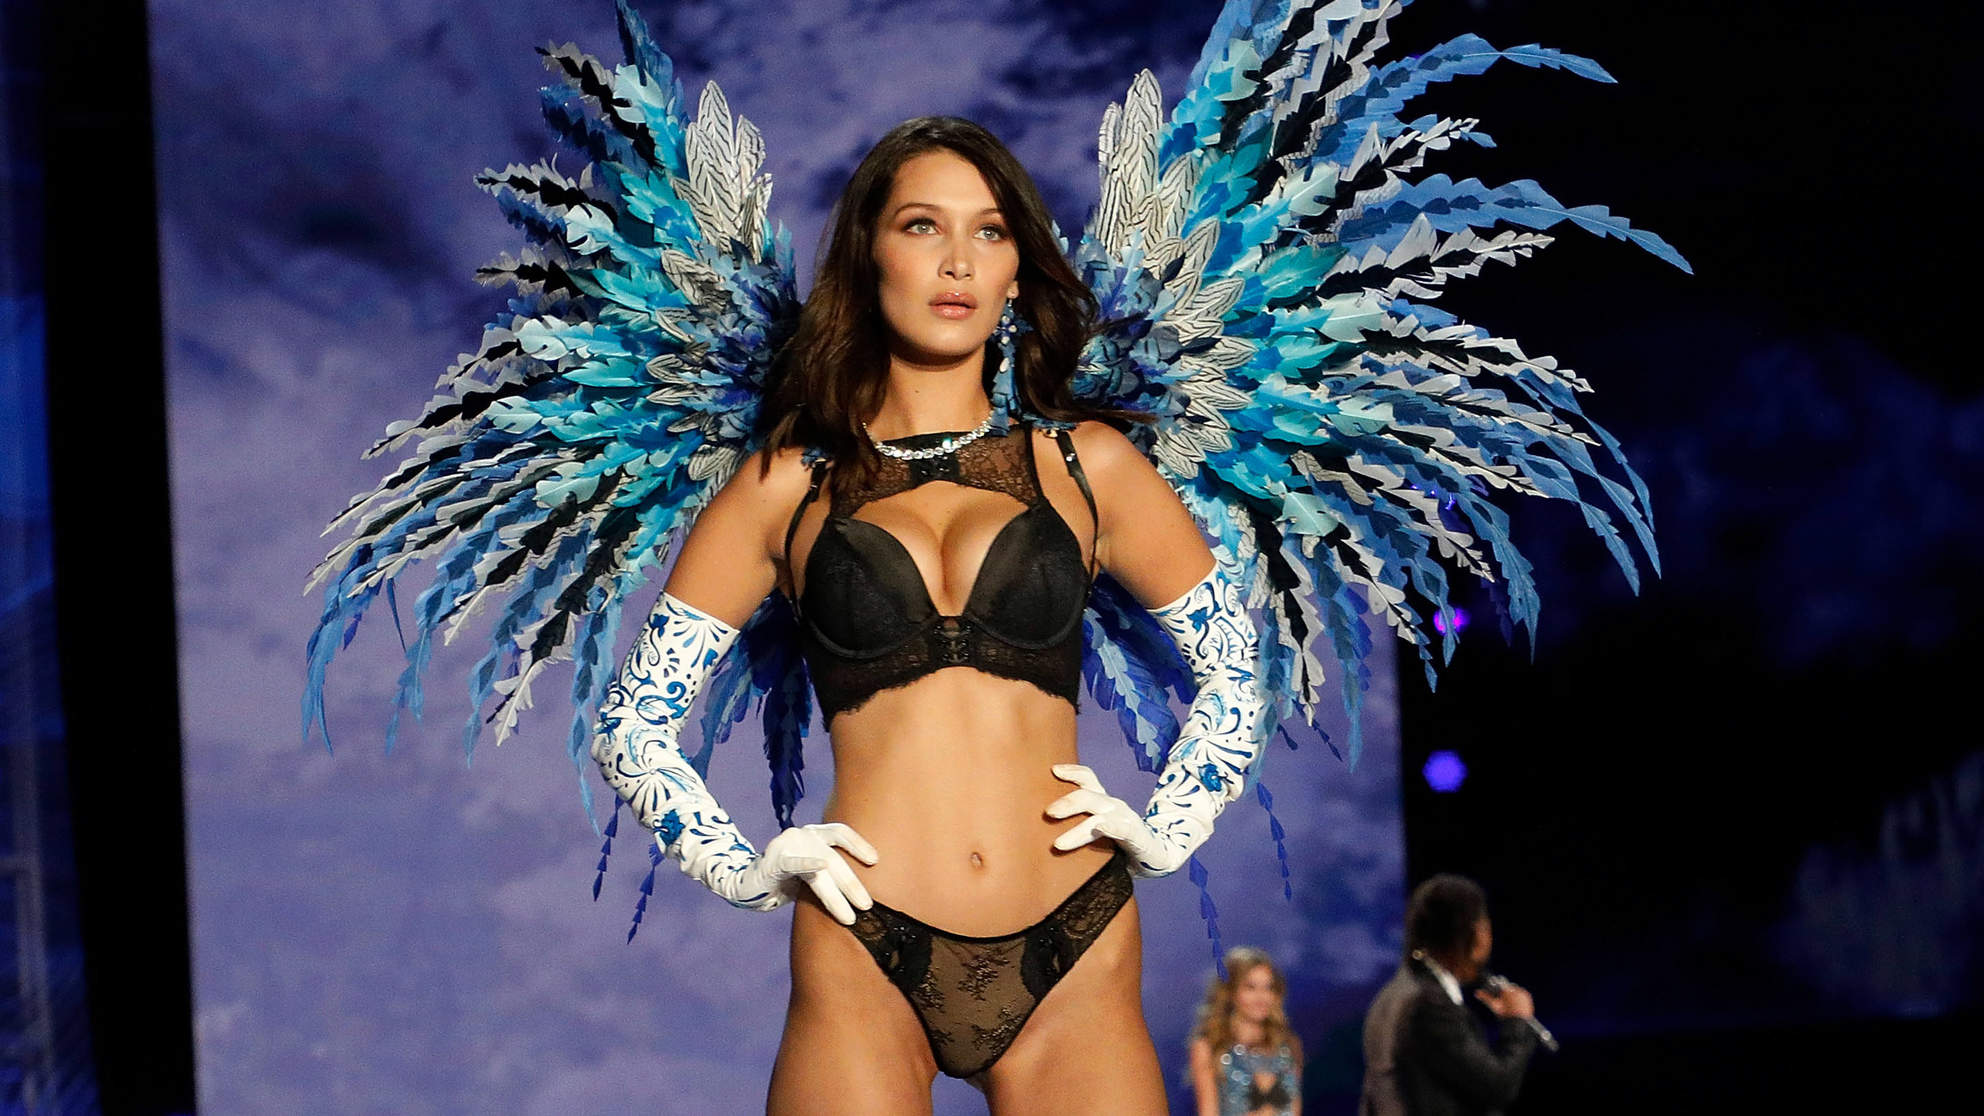 Bella Hadid Responds to Body Shamers as Speculation About Thin Victoria's Secret Models Grows